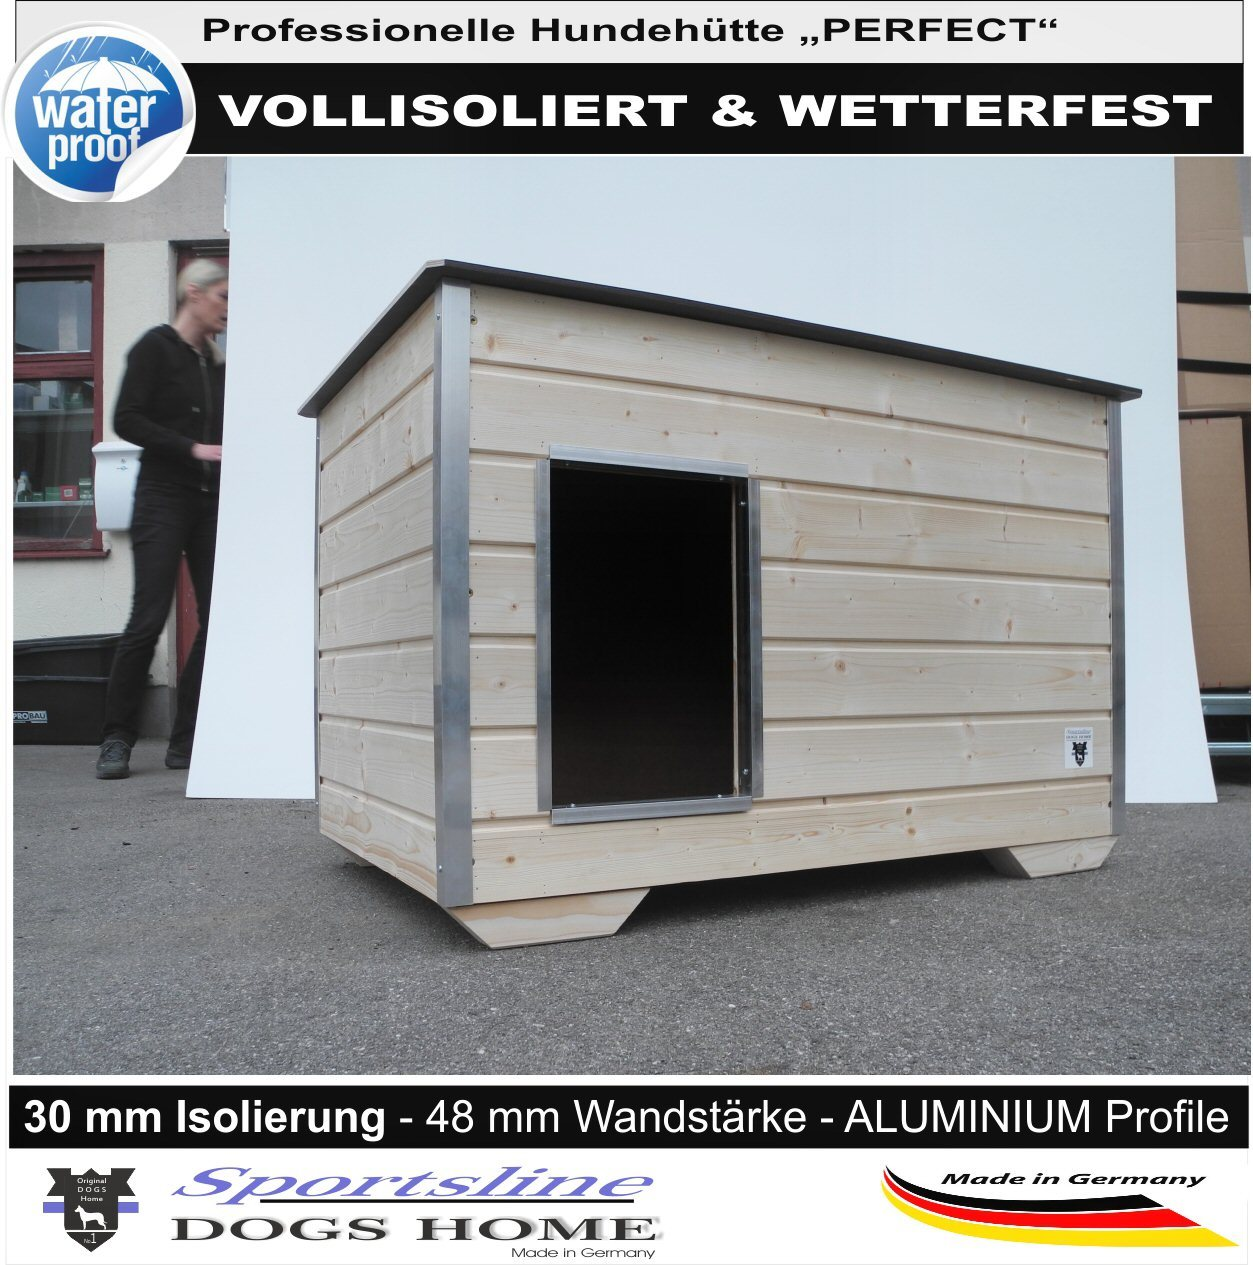 beitr ge zum thema hundehuette blog home of pets alles rund ums haustier. Black Bedroom Furniture Sets. Home Design Ideas